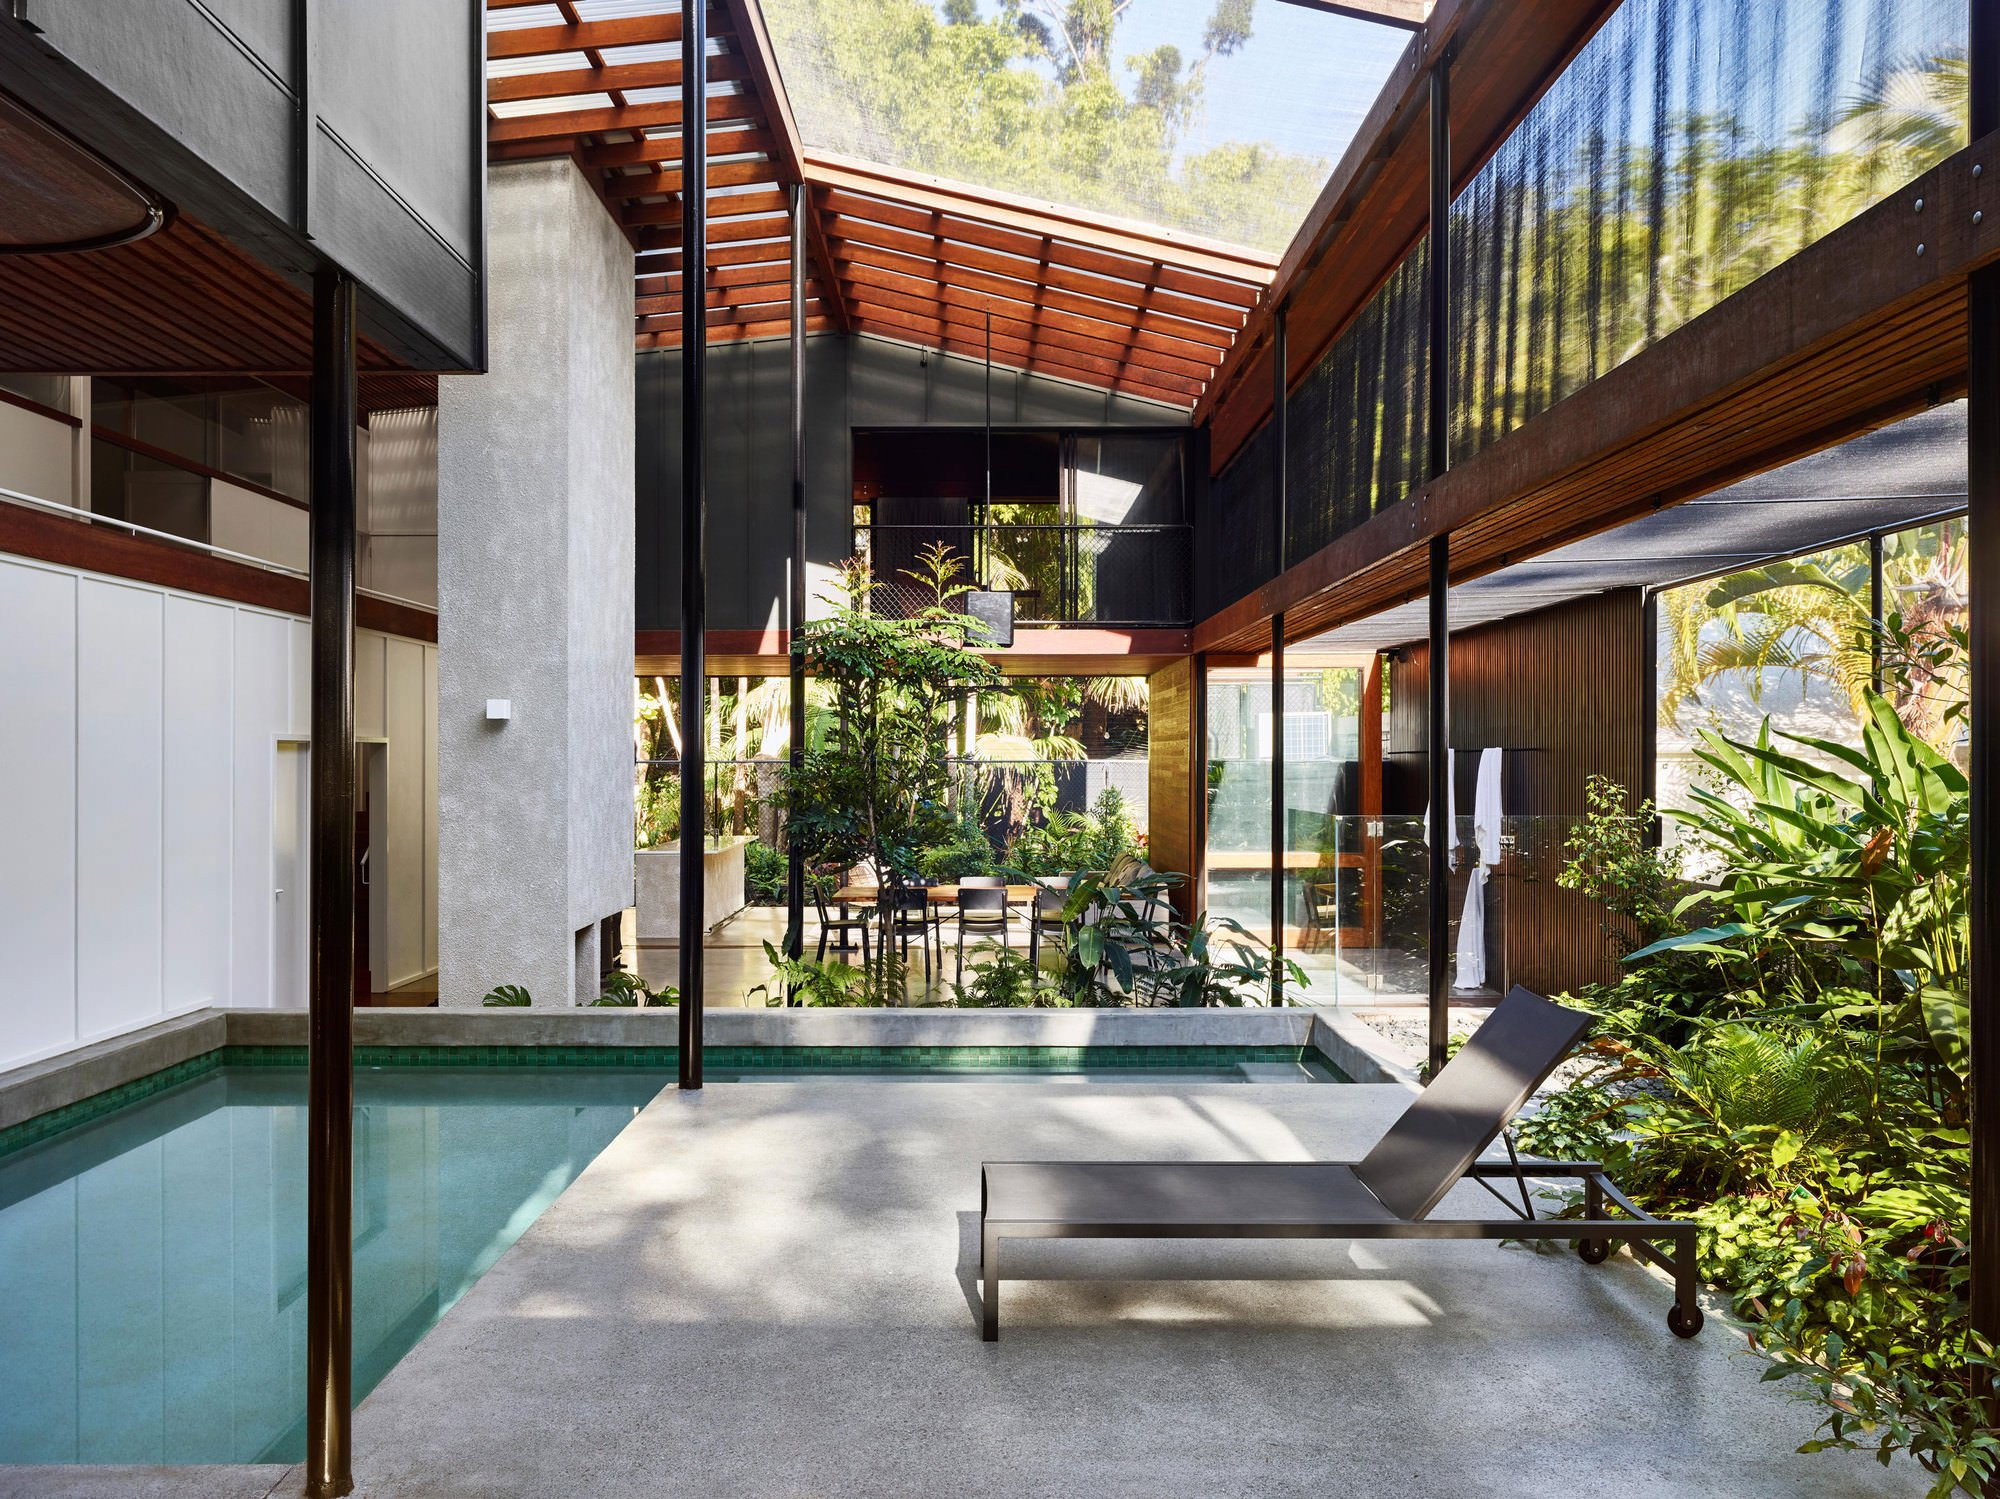 Screened courtyard with a pool in Queensland, Australia